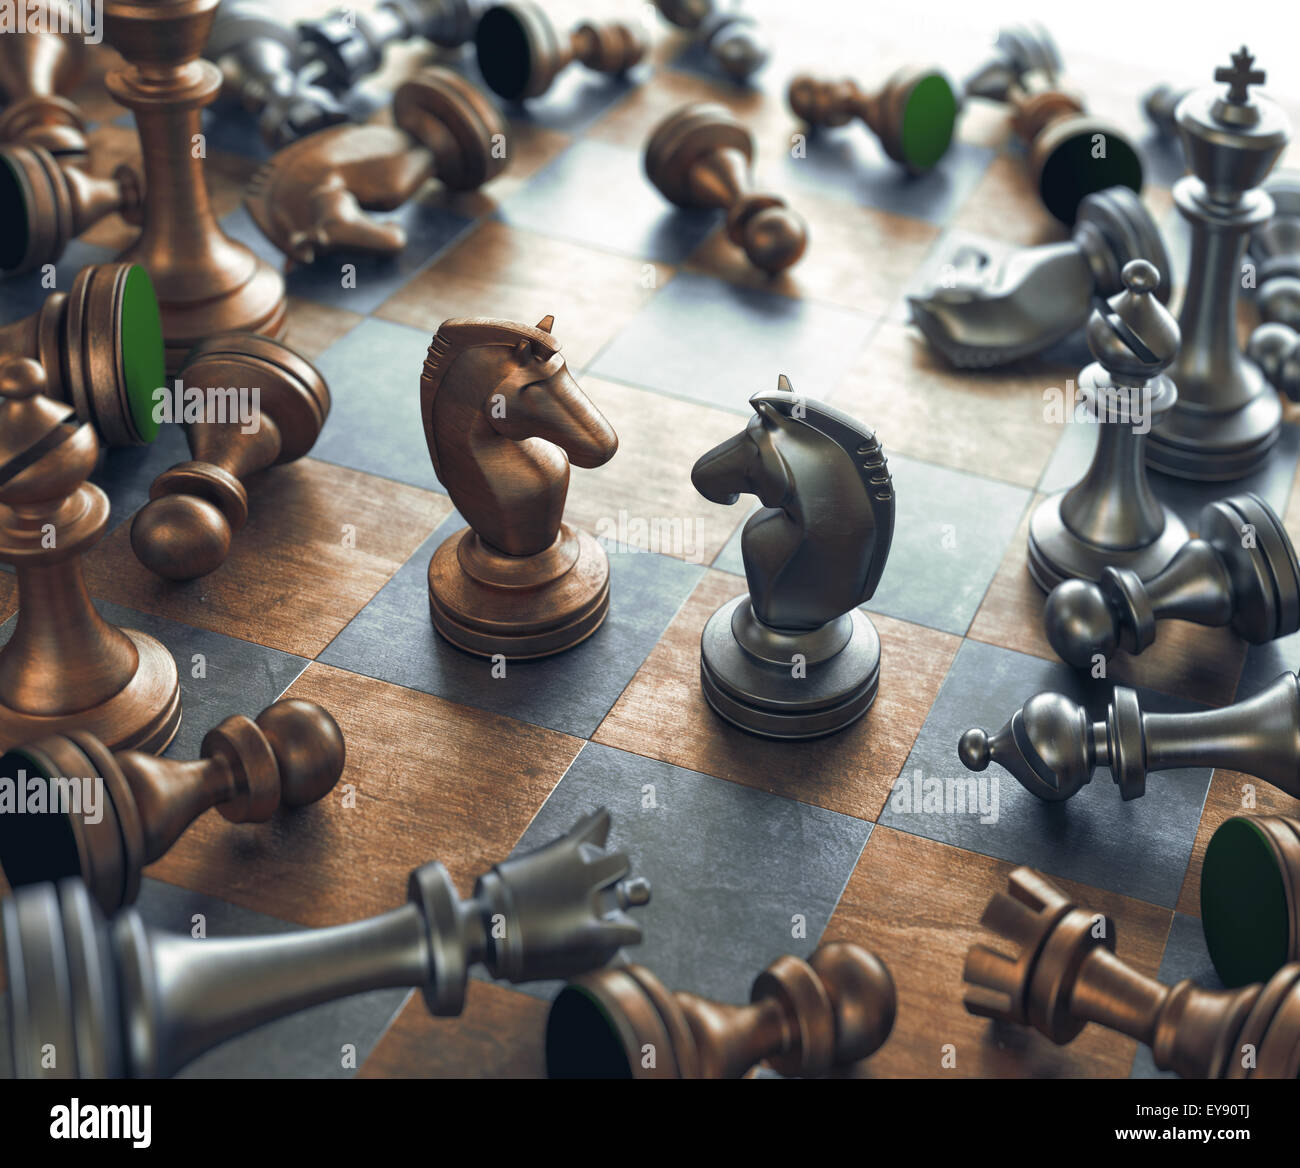 Dispute face to face in chess. - Stock Image